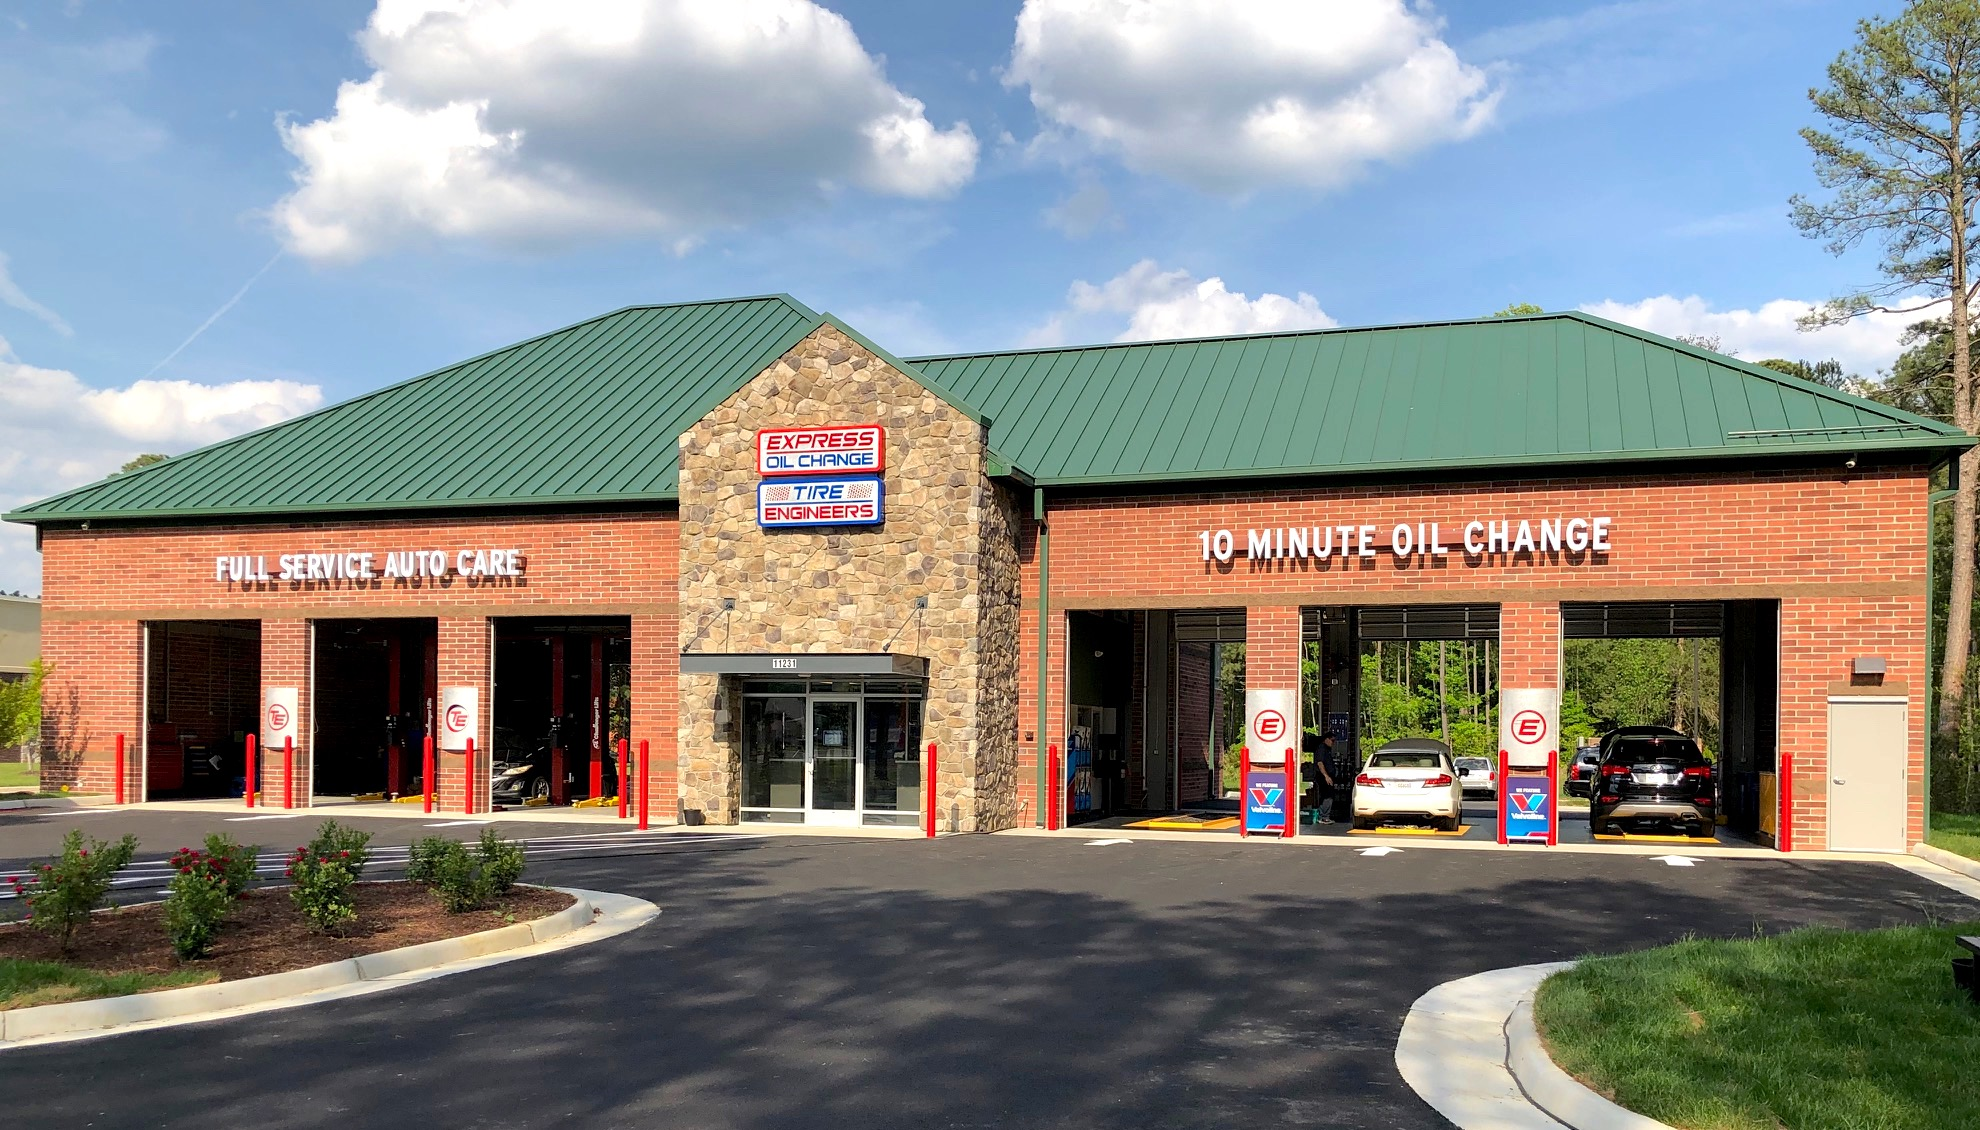 Express Oil Change & Tire Engineers Chester, VA - Ironbridge store